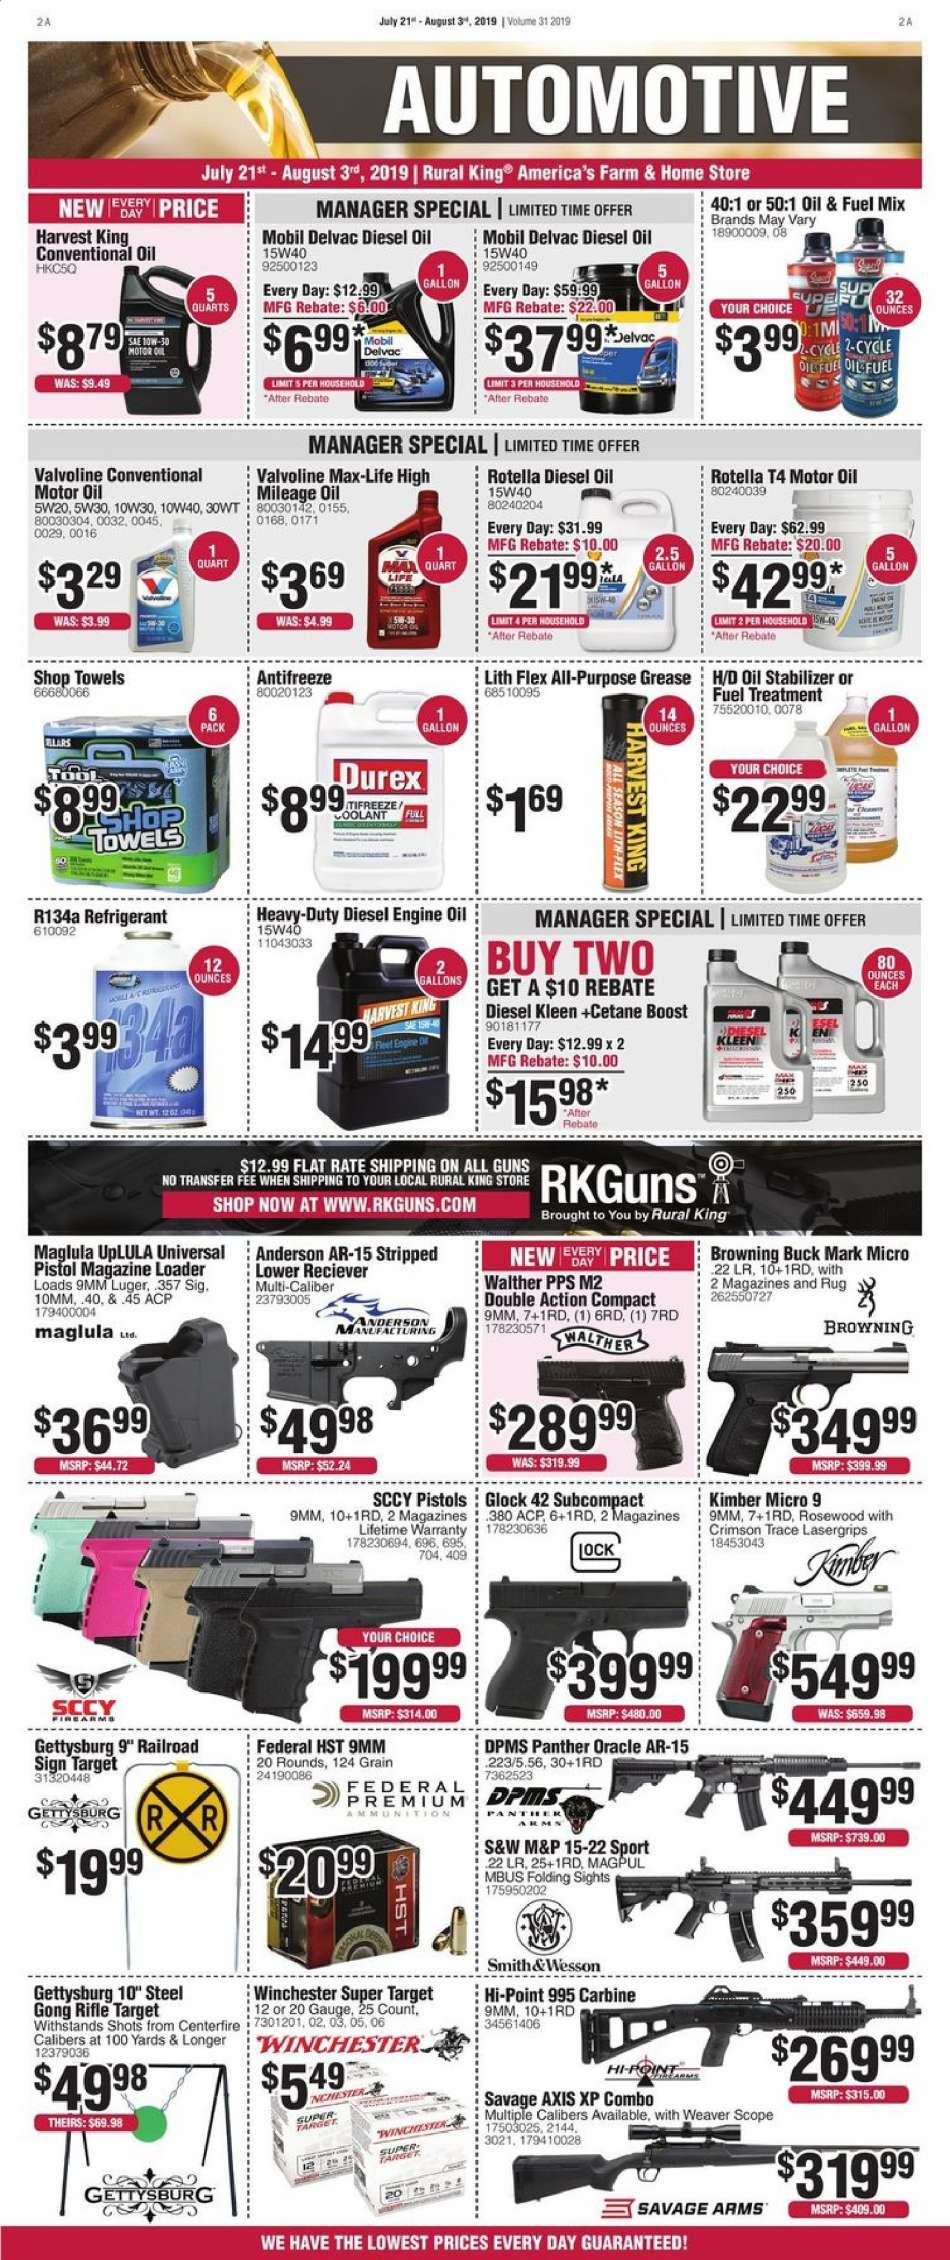 Rural King flyer 07 21 2019 - 08 03 2019 | Weekly-ads us